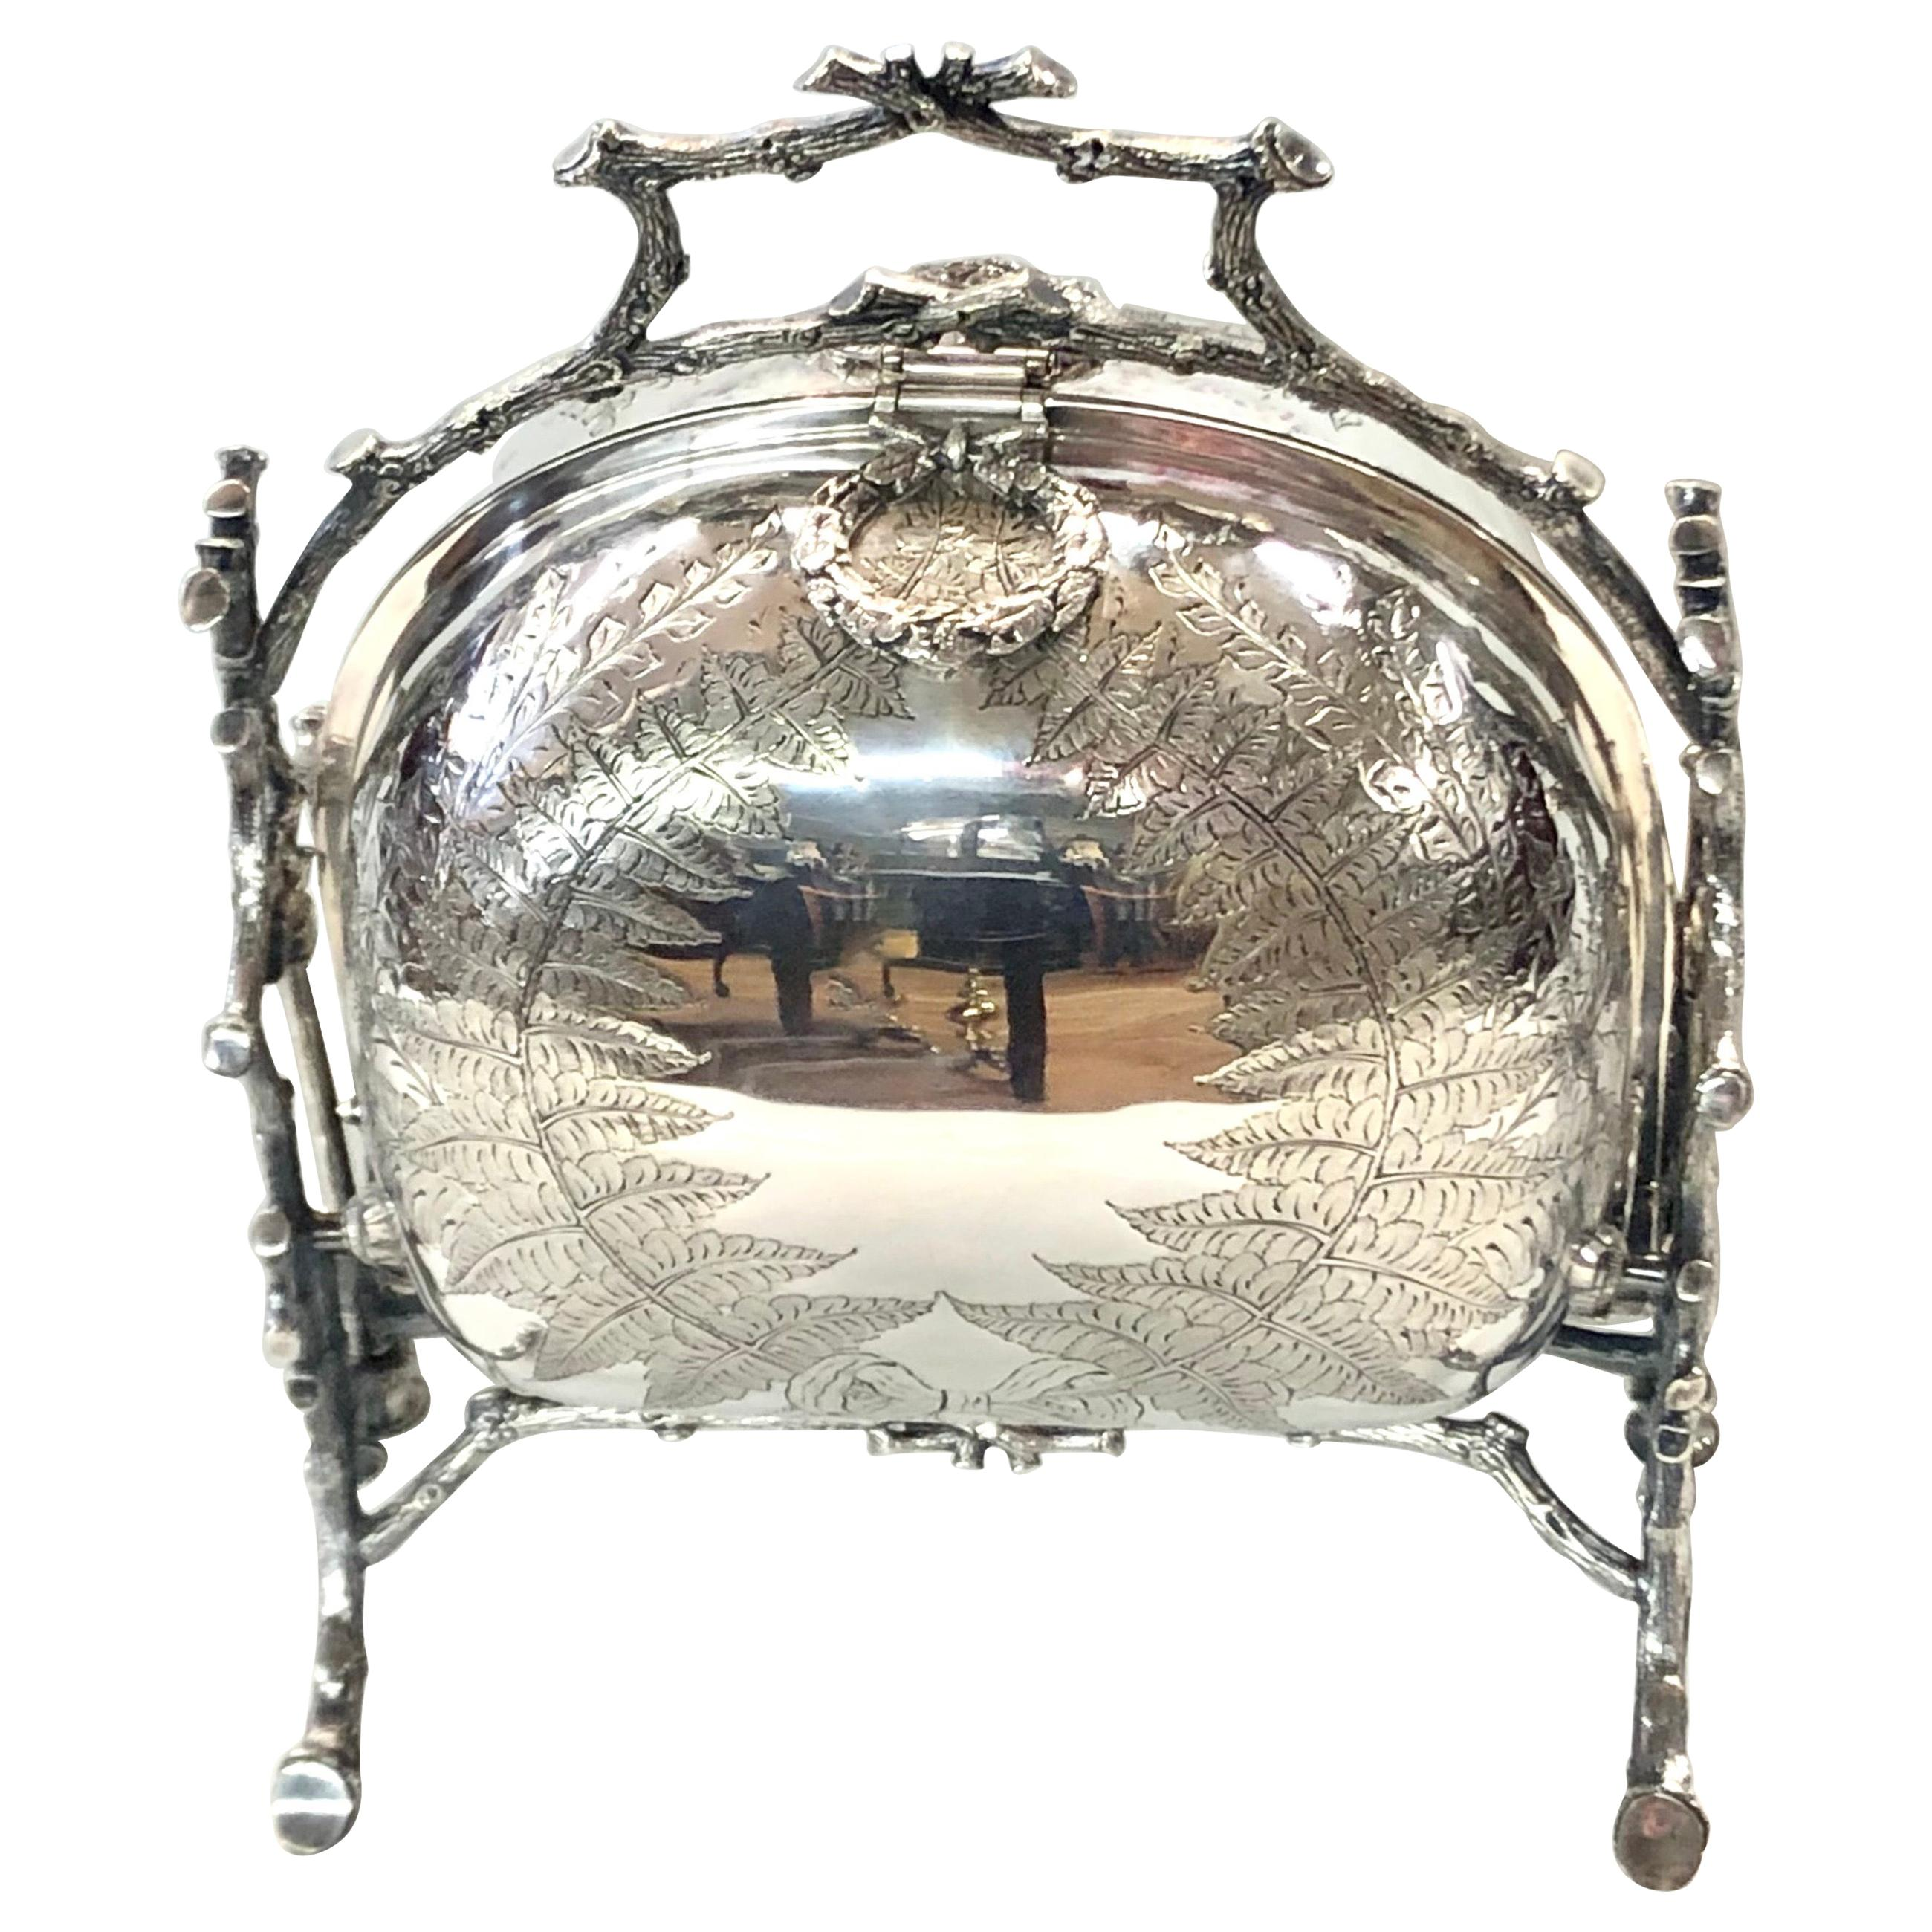 Antique English Silver Plate Hand Chased Cushion Shape Folding Biscuit Box